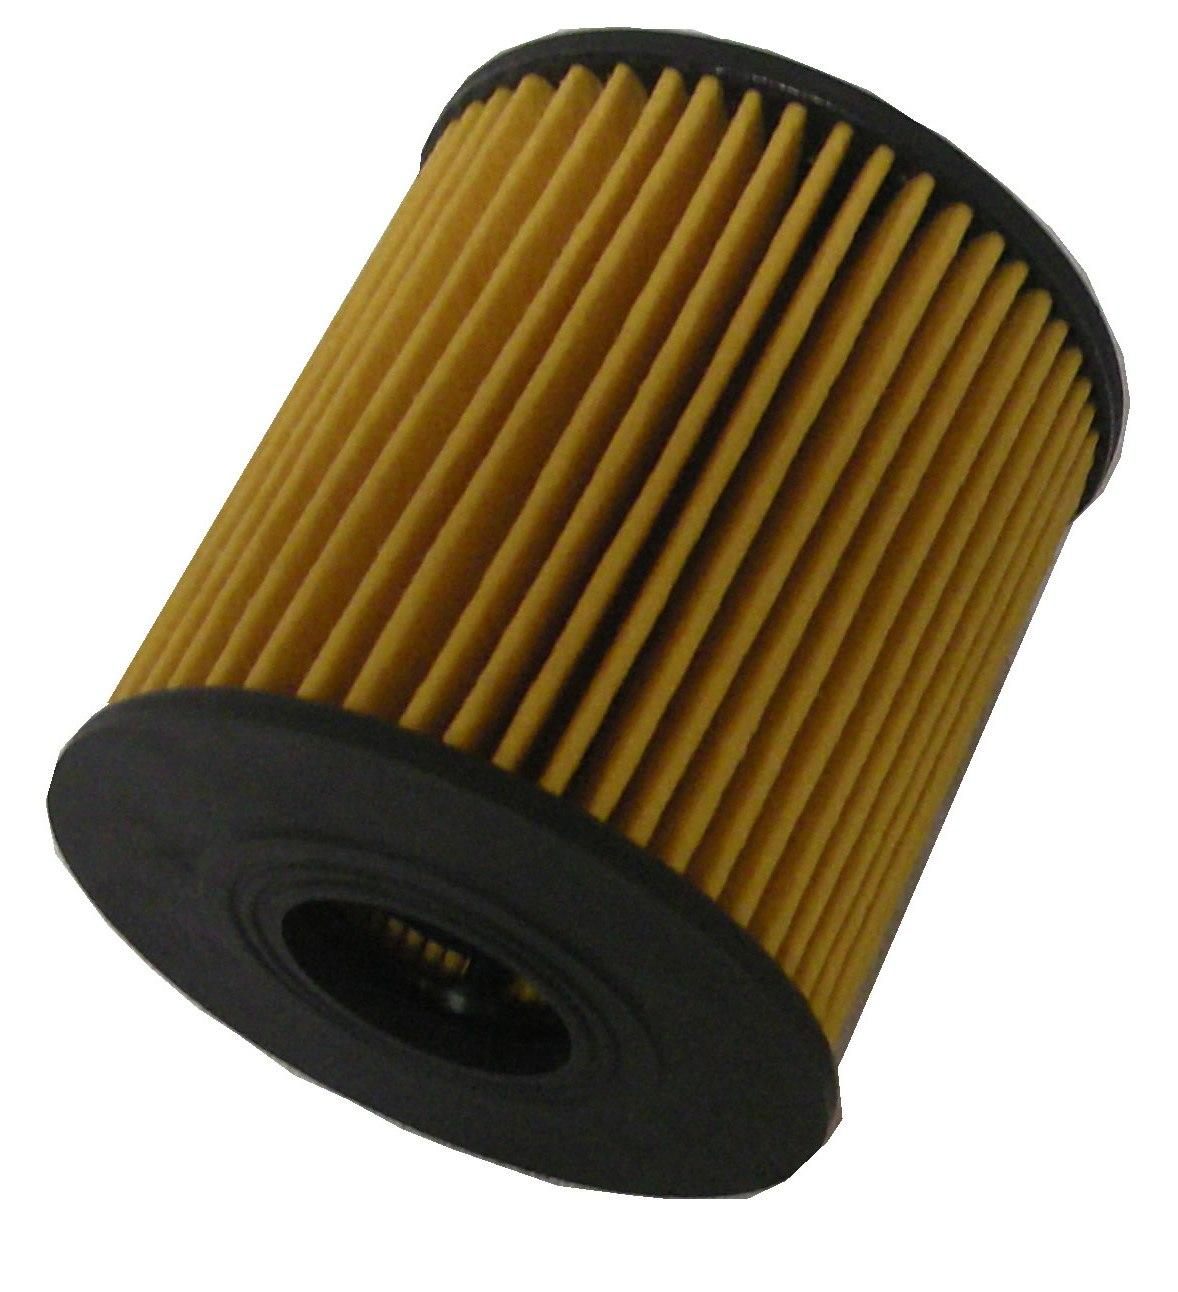 08 09 Ford Focus New Air Cleaner Filter: OE42001 OIL FILTER FORD TRANSIT 2.4L 2005- OIL FILTER